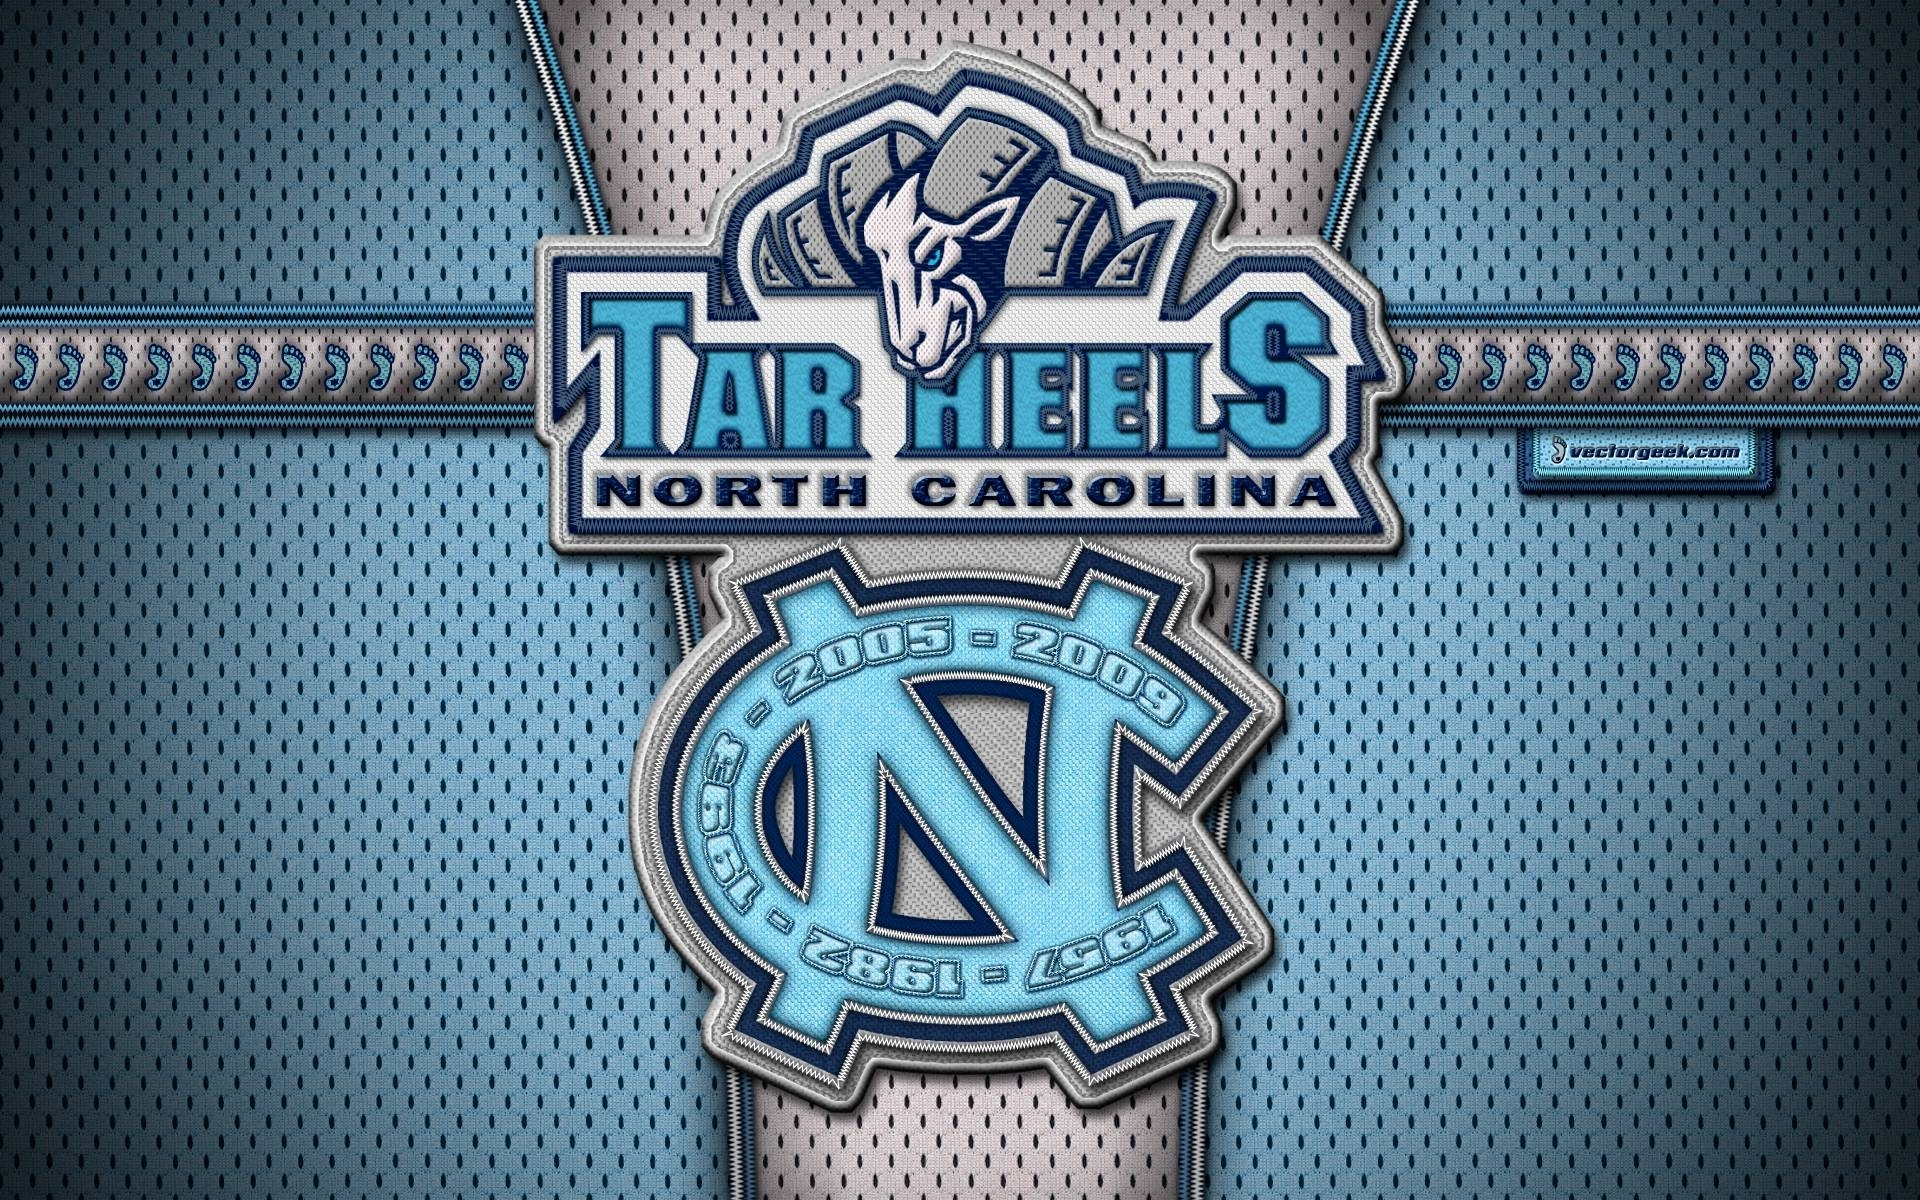 north carolina tar heels basketball wallpapers group (59+)